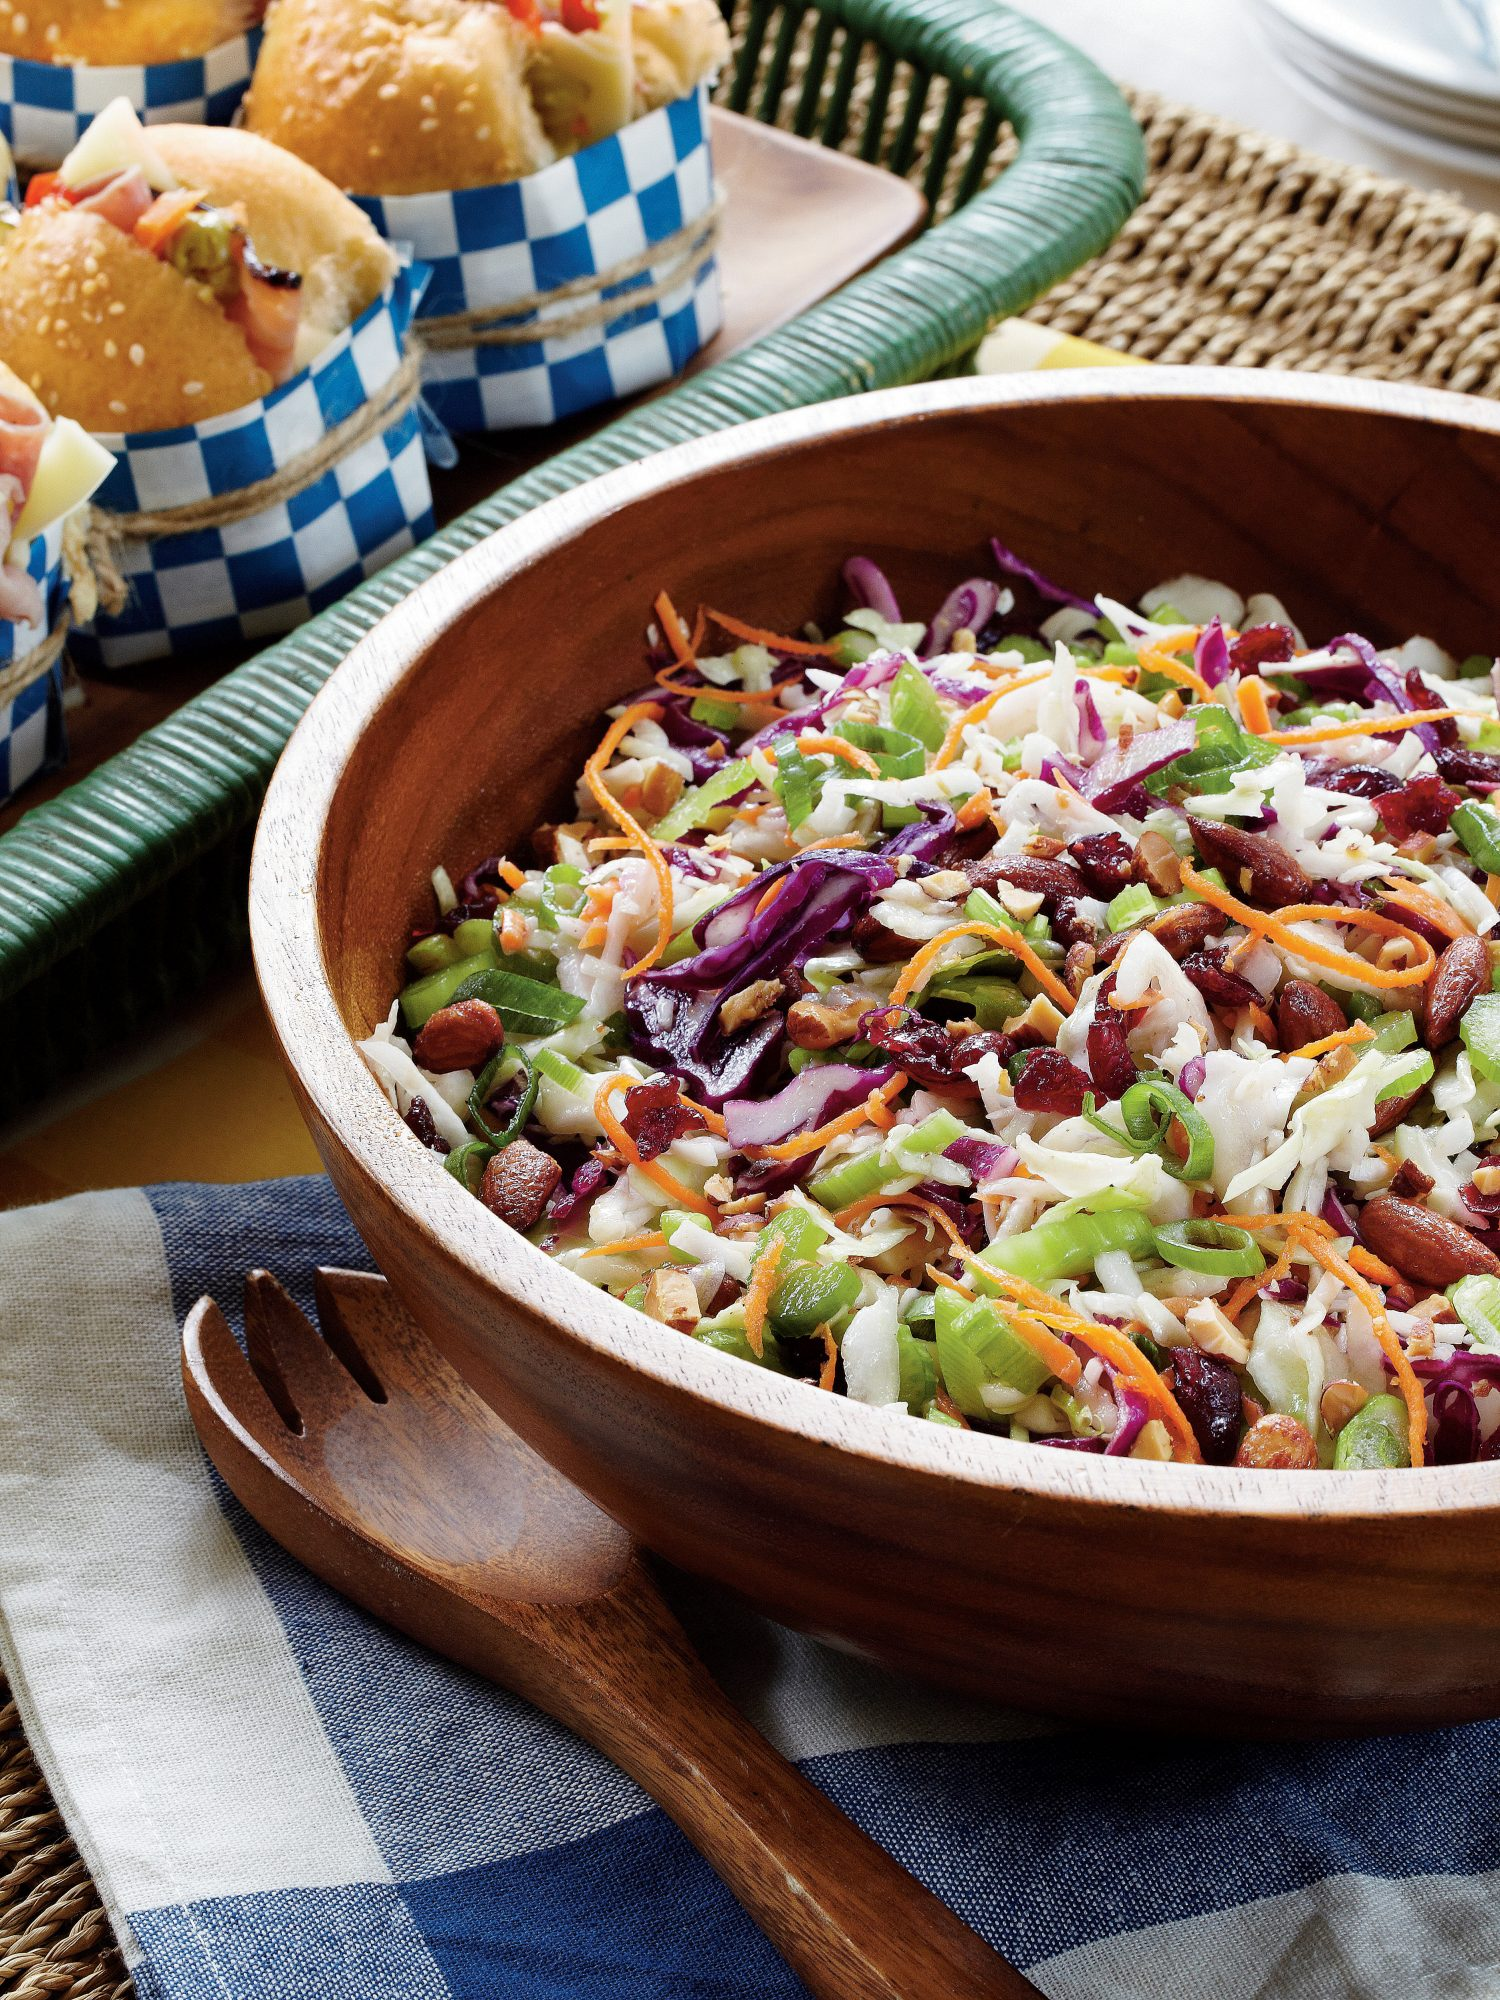 This Is My Favorite 30-Minute Tailgate Recipe